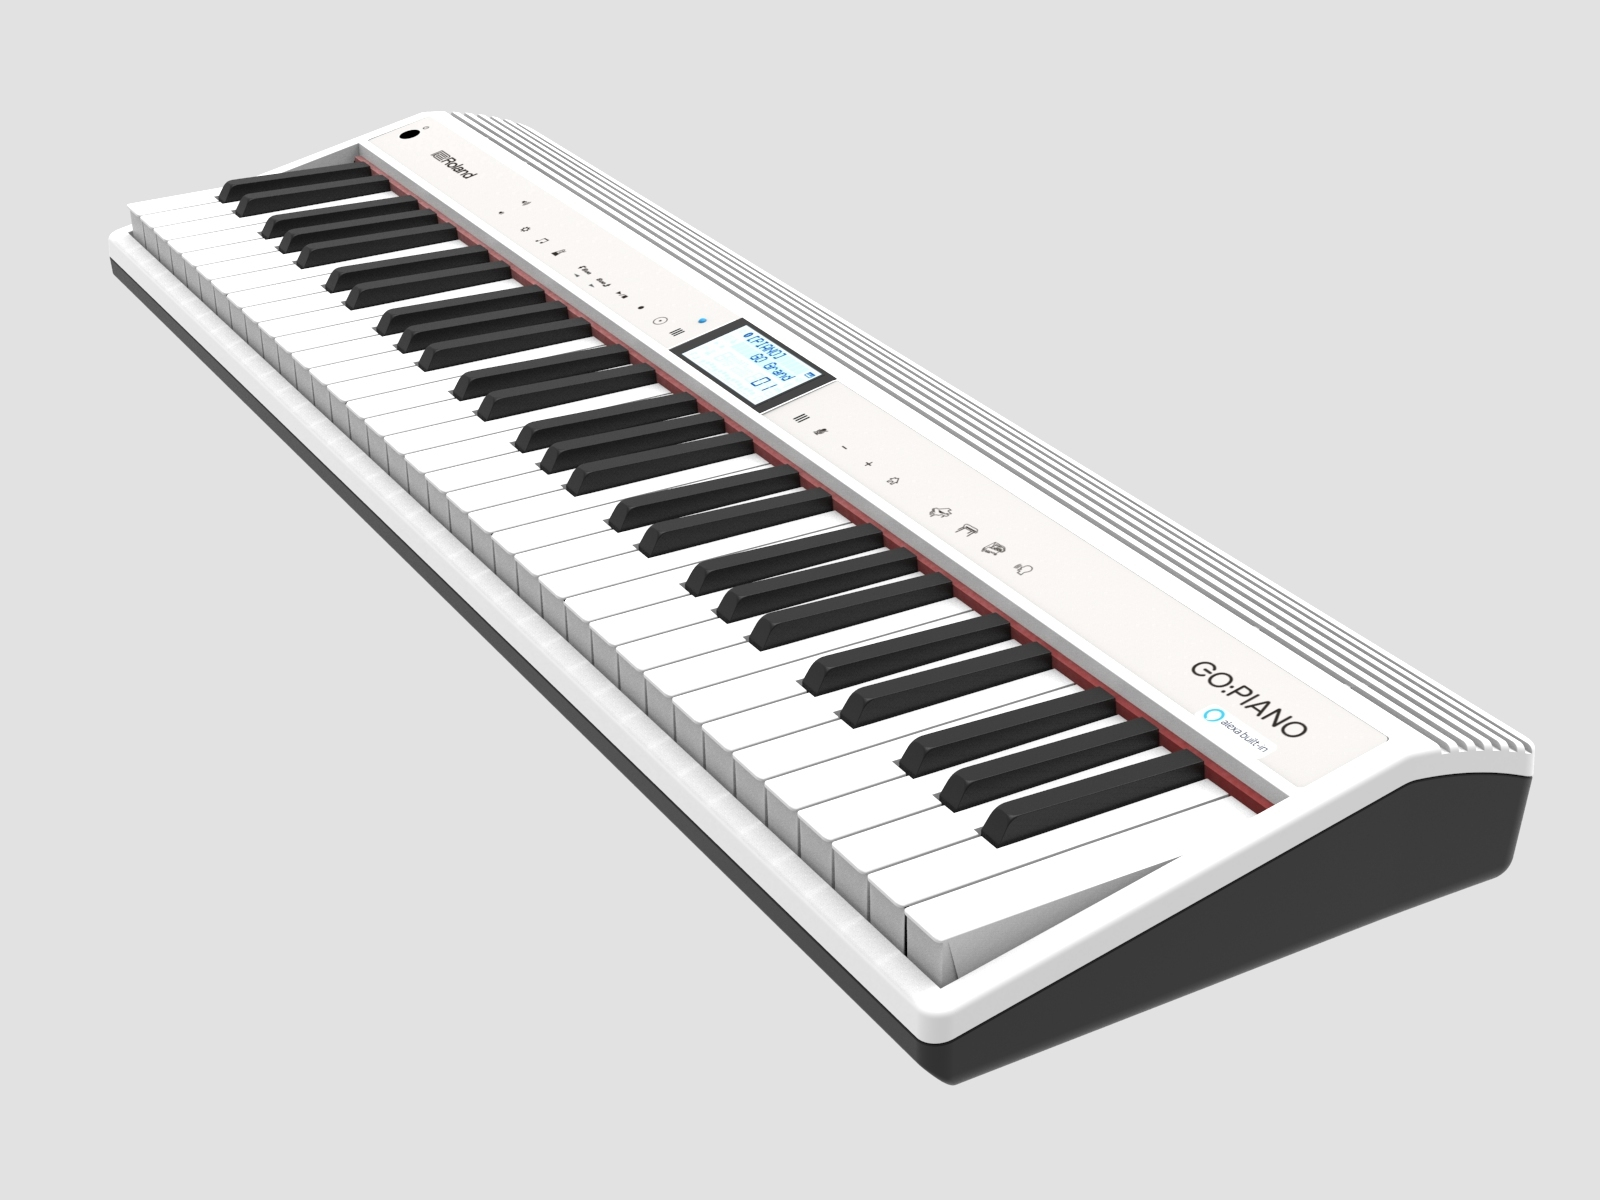 『GO:PIANO with Alexa Built-in』